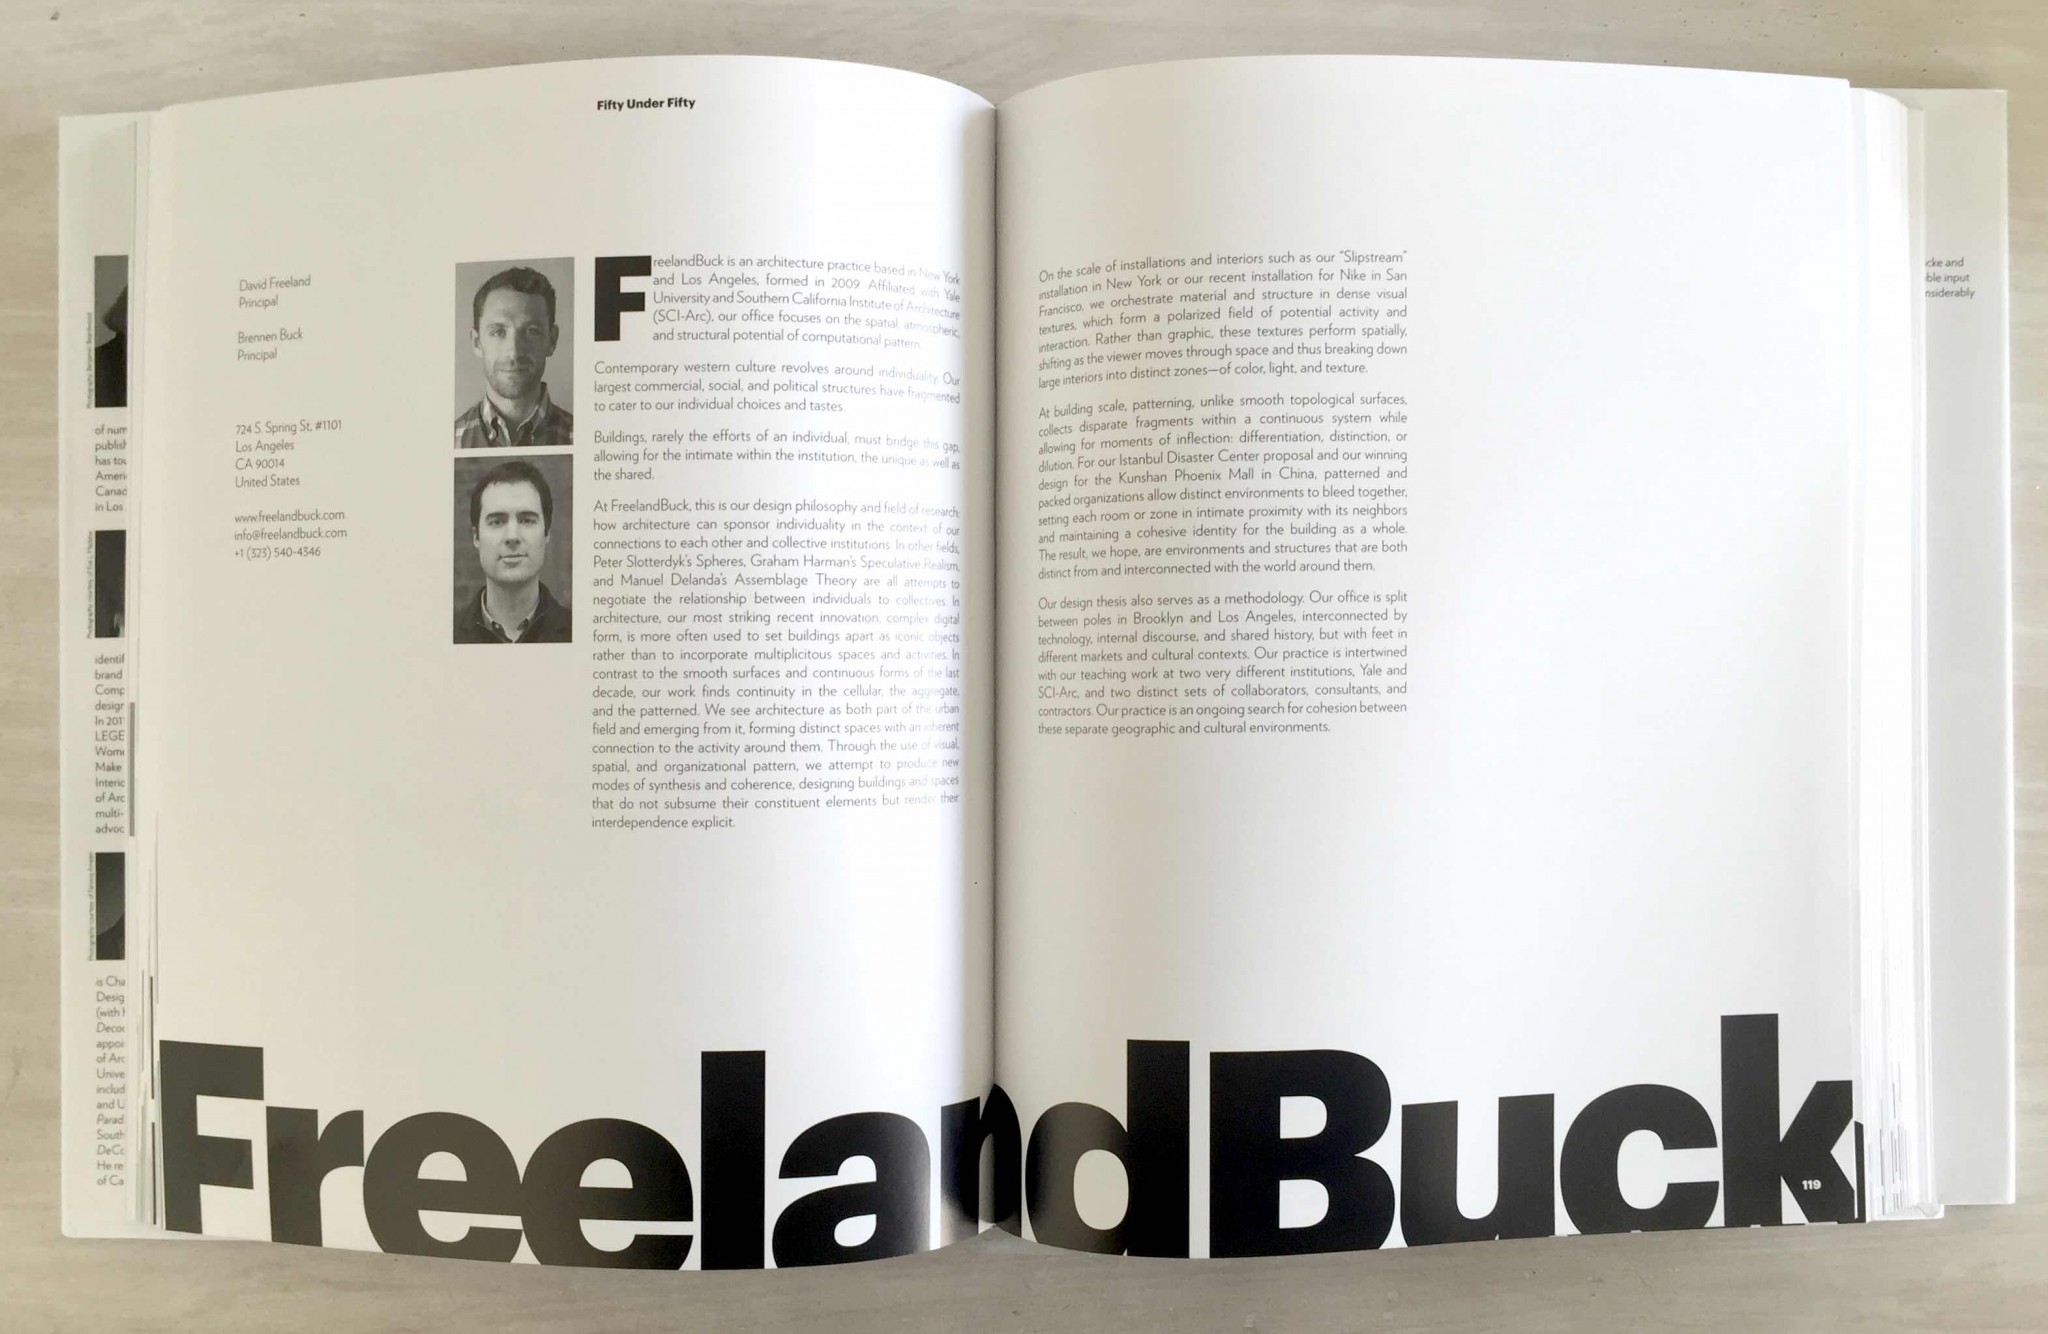 FreelandBuck_Fifty Under Fifty: Innovators of the 21st Century